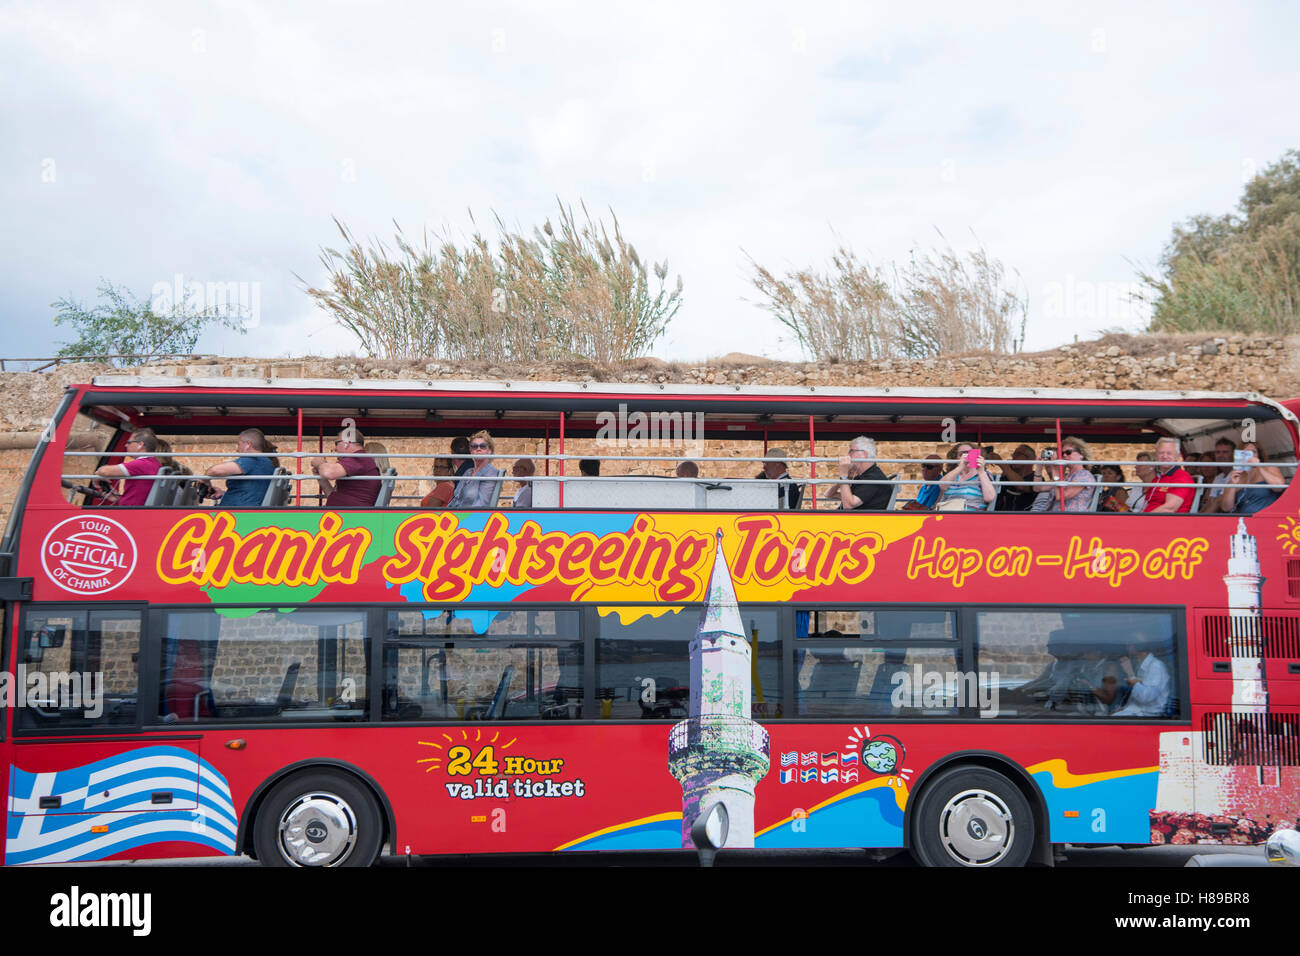 Griechenland, Kreta, Chania, Sightseeing-Bus - Stock Image